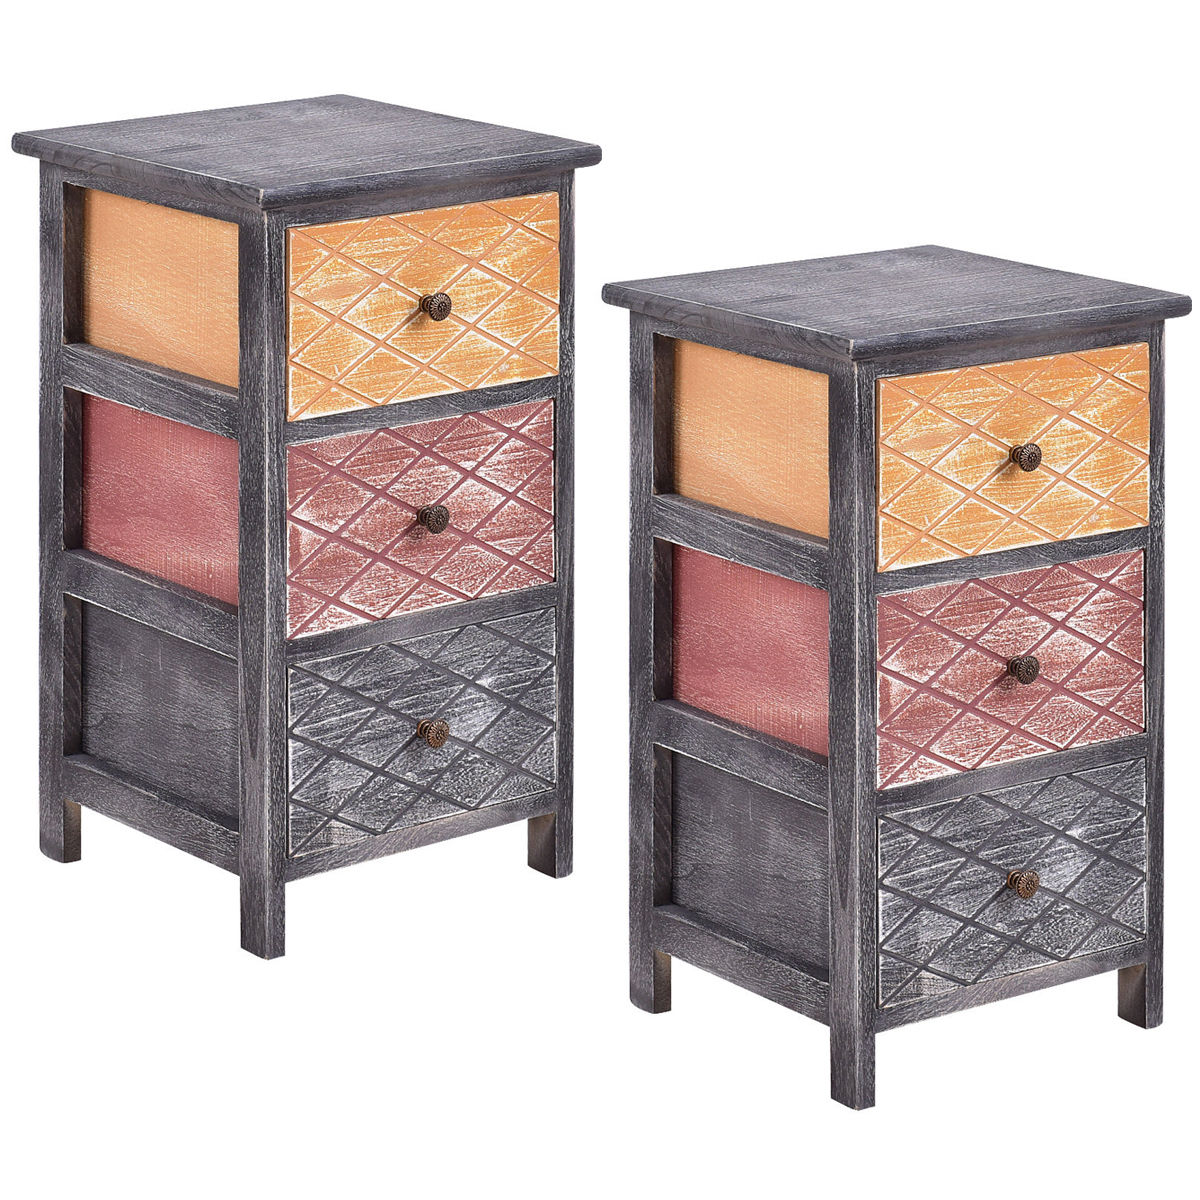 Gymax 2PCS Wooden Bedside Nightstand Table 3 Drawers